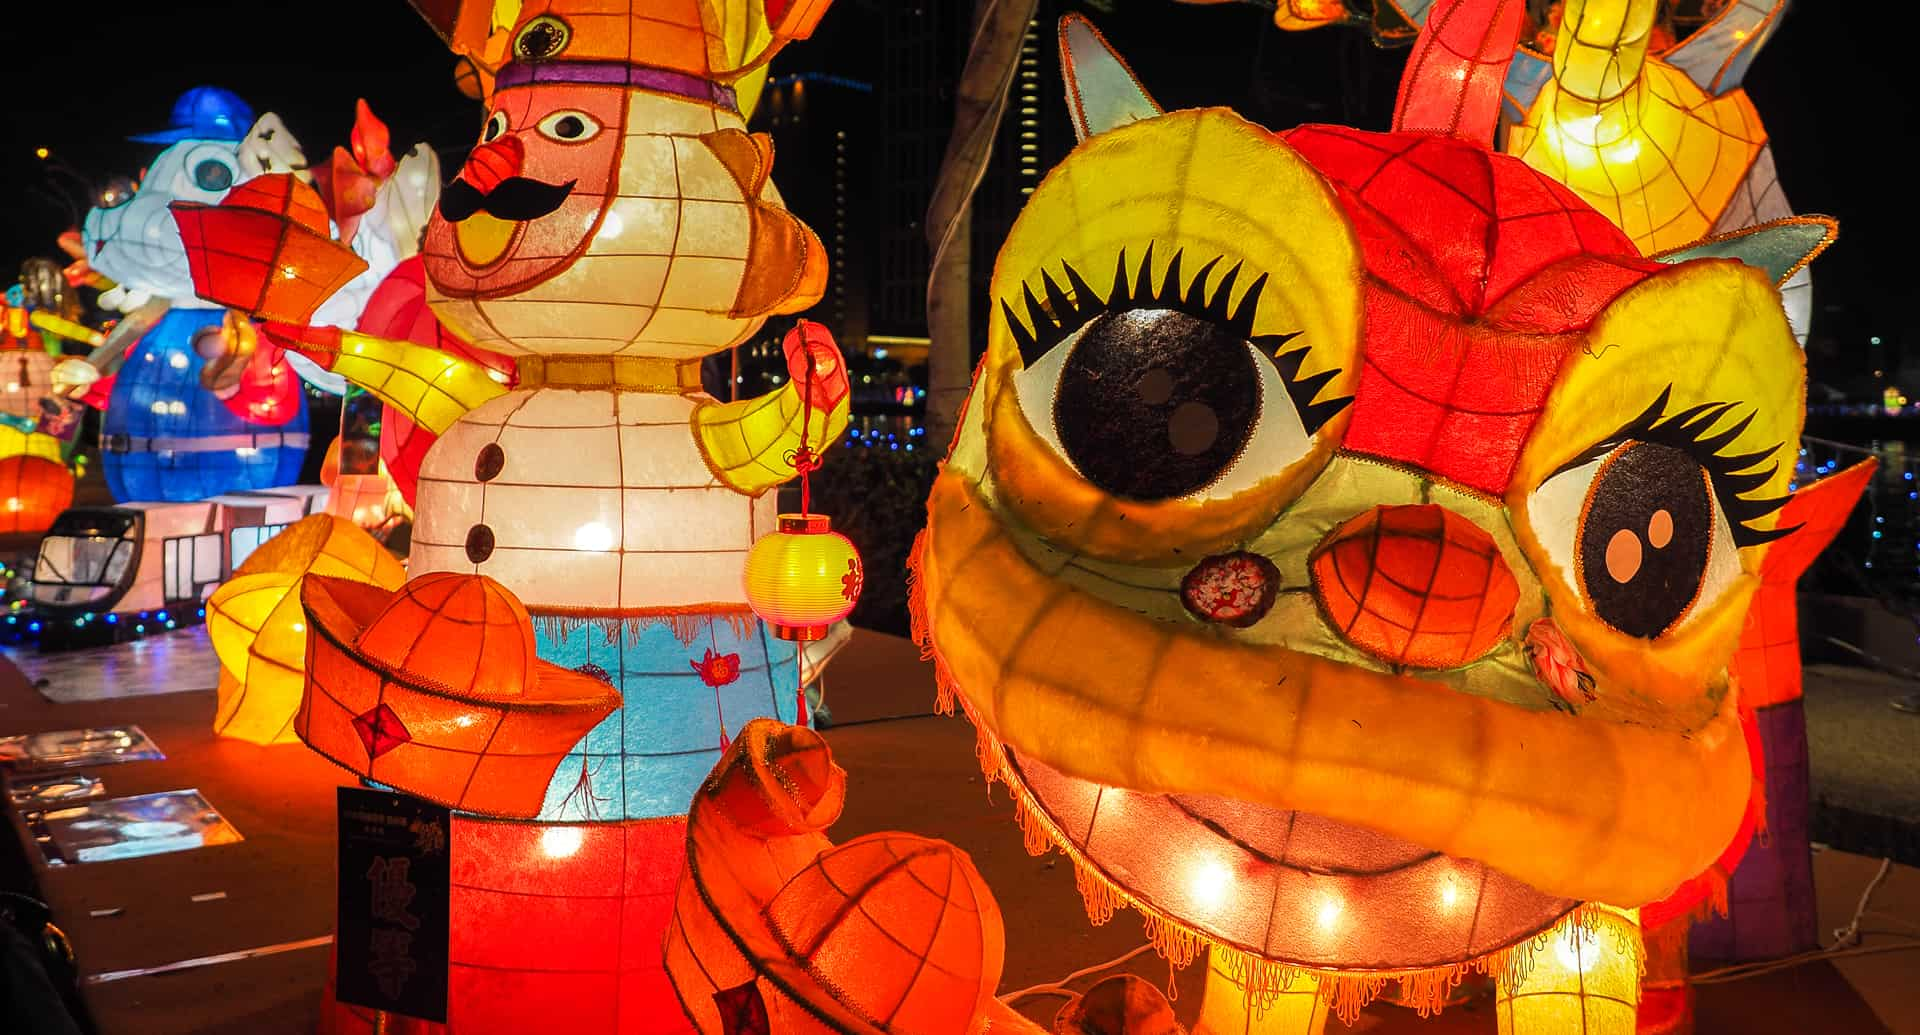 A detailed guide to traveling to Taiwan during Chinese New Year (Lunar New Year) and Taipei during Chinese New Year